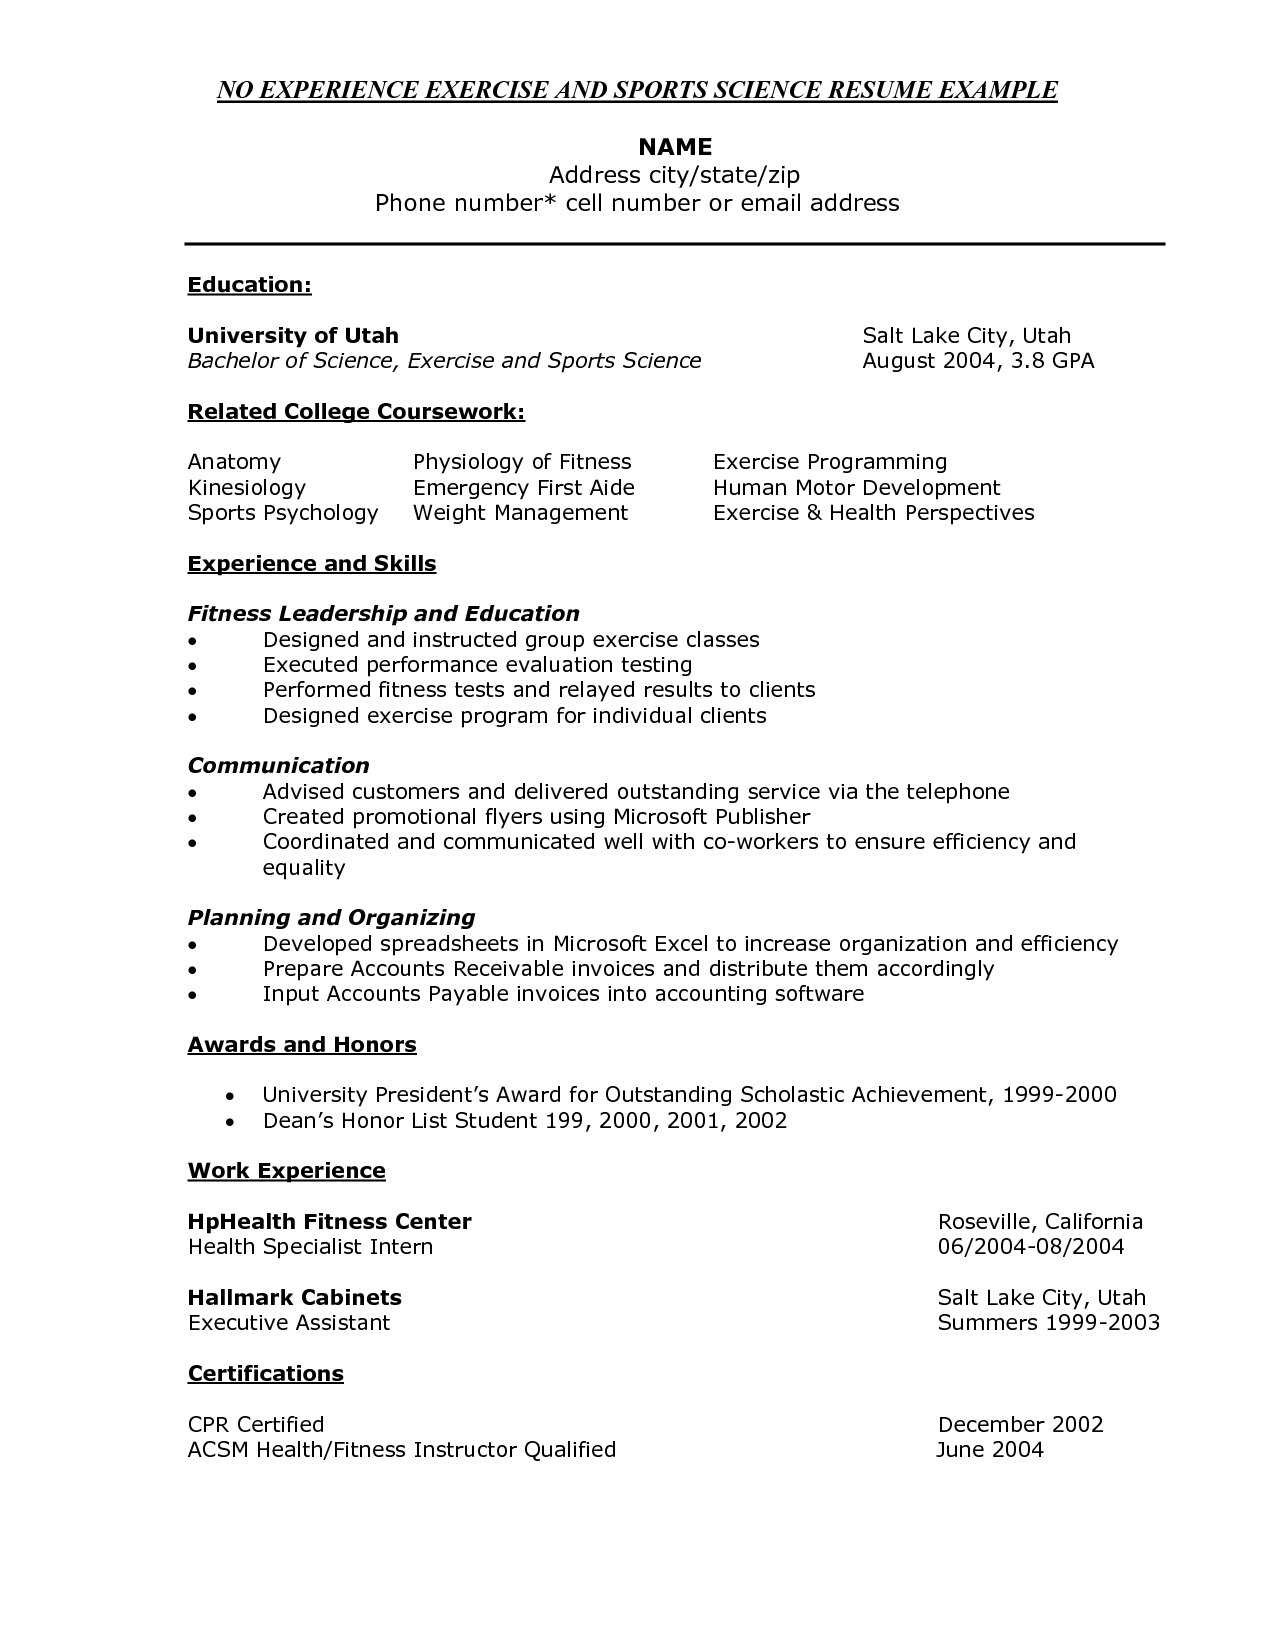 City Colleges Of Chicago Malcolm X Career Planning Sample 1650 1275px Sample Resumes Letter Sample And Fo Resume Skills Job Resume Examples Resume Examples